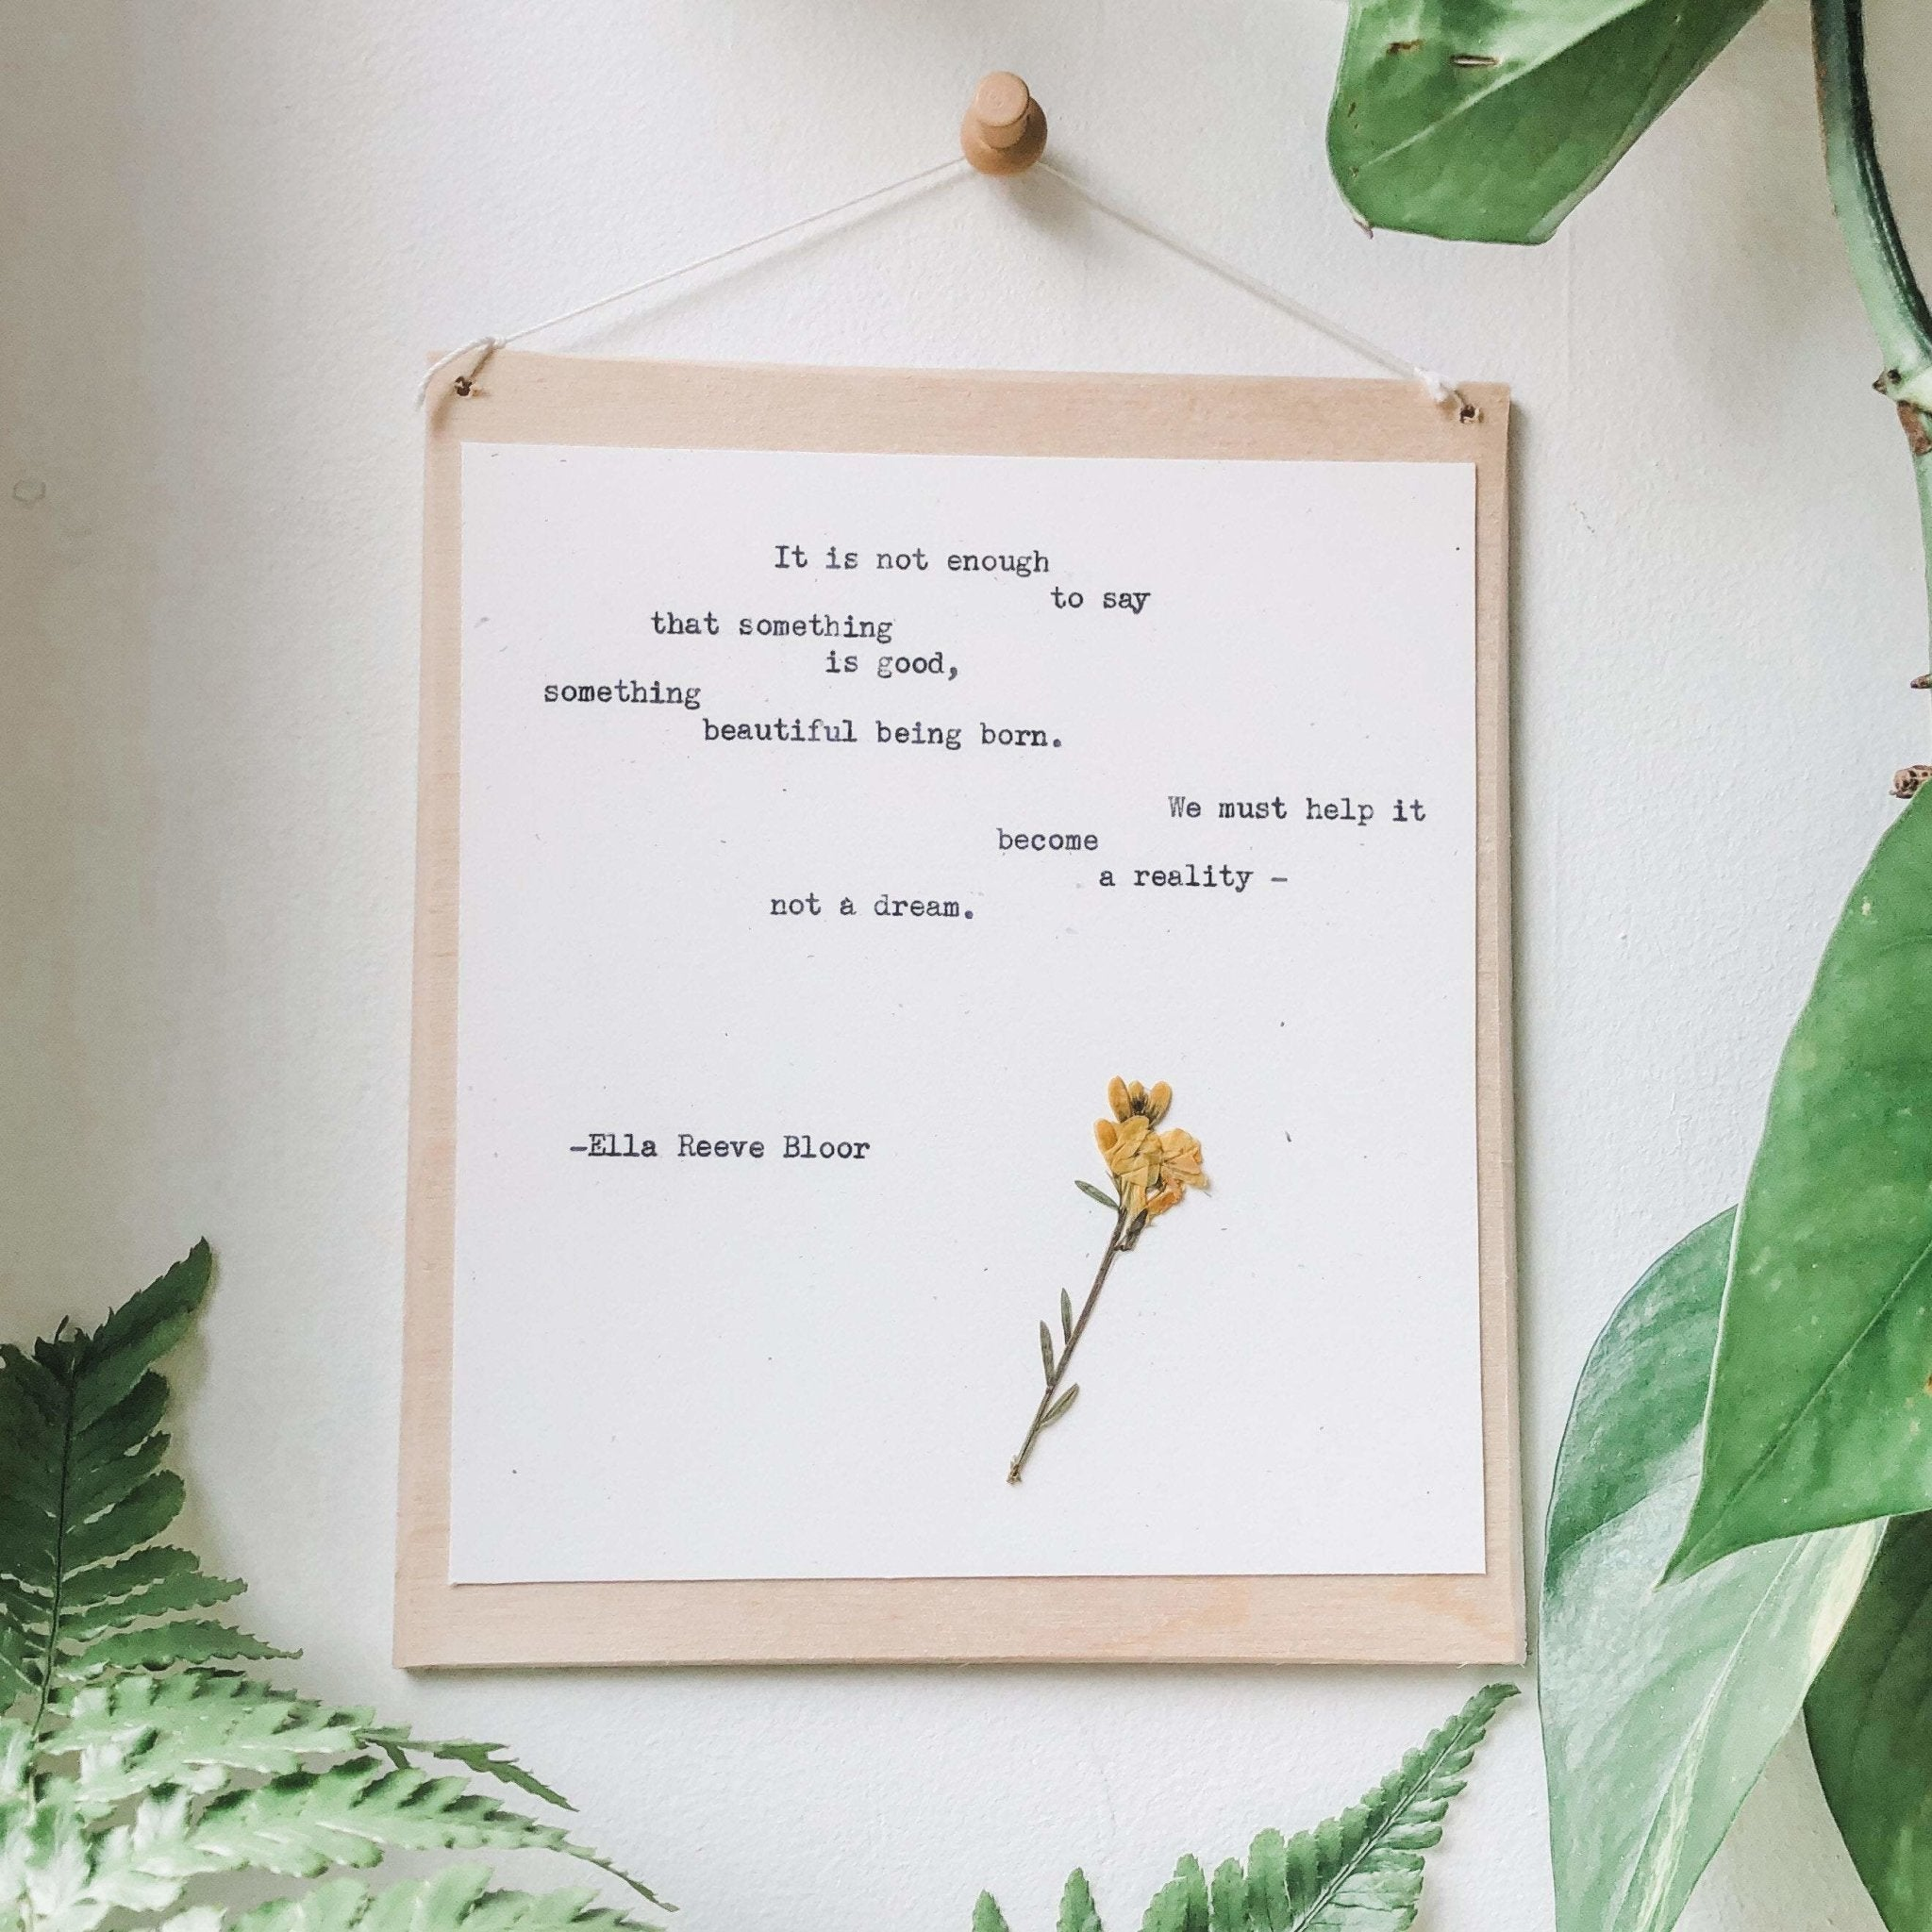 ella reeve bloor quote typed in typewriter font on white paper, mounted on birch wood and paired with a pressed flower. handmade décor by flora & phrase